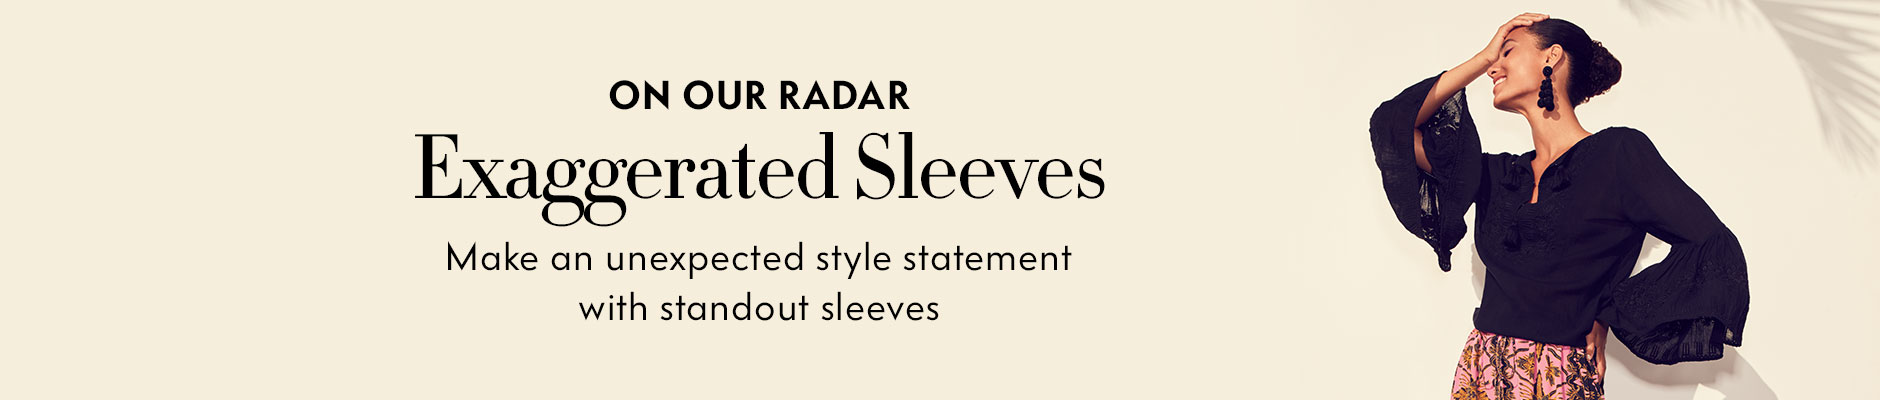 On our radar - exaggerated sleeves, make an unexpected style statement with standout sleeves